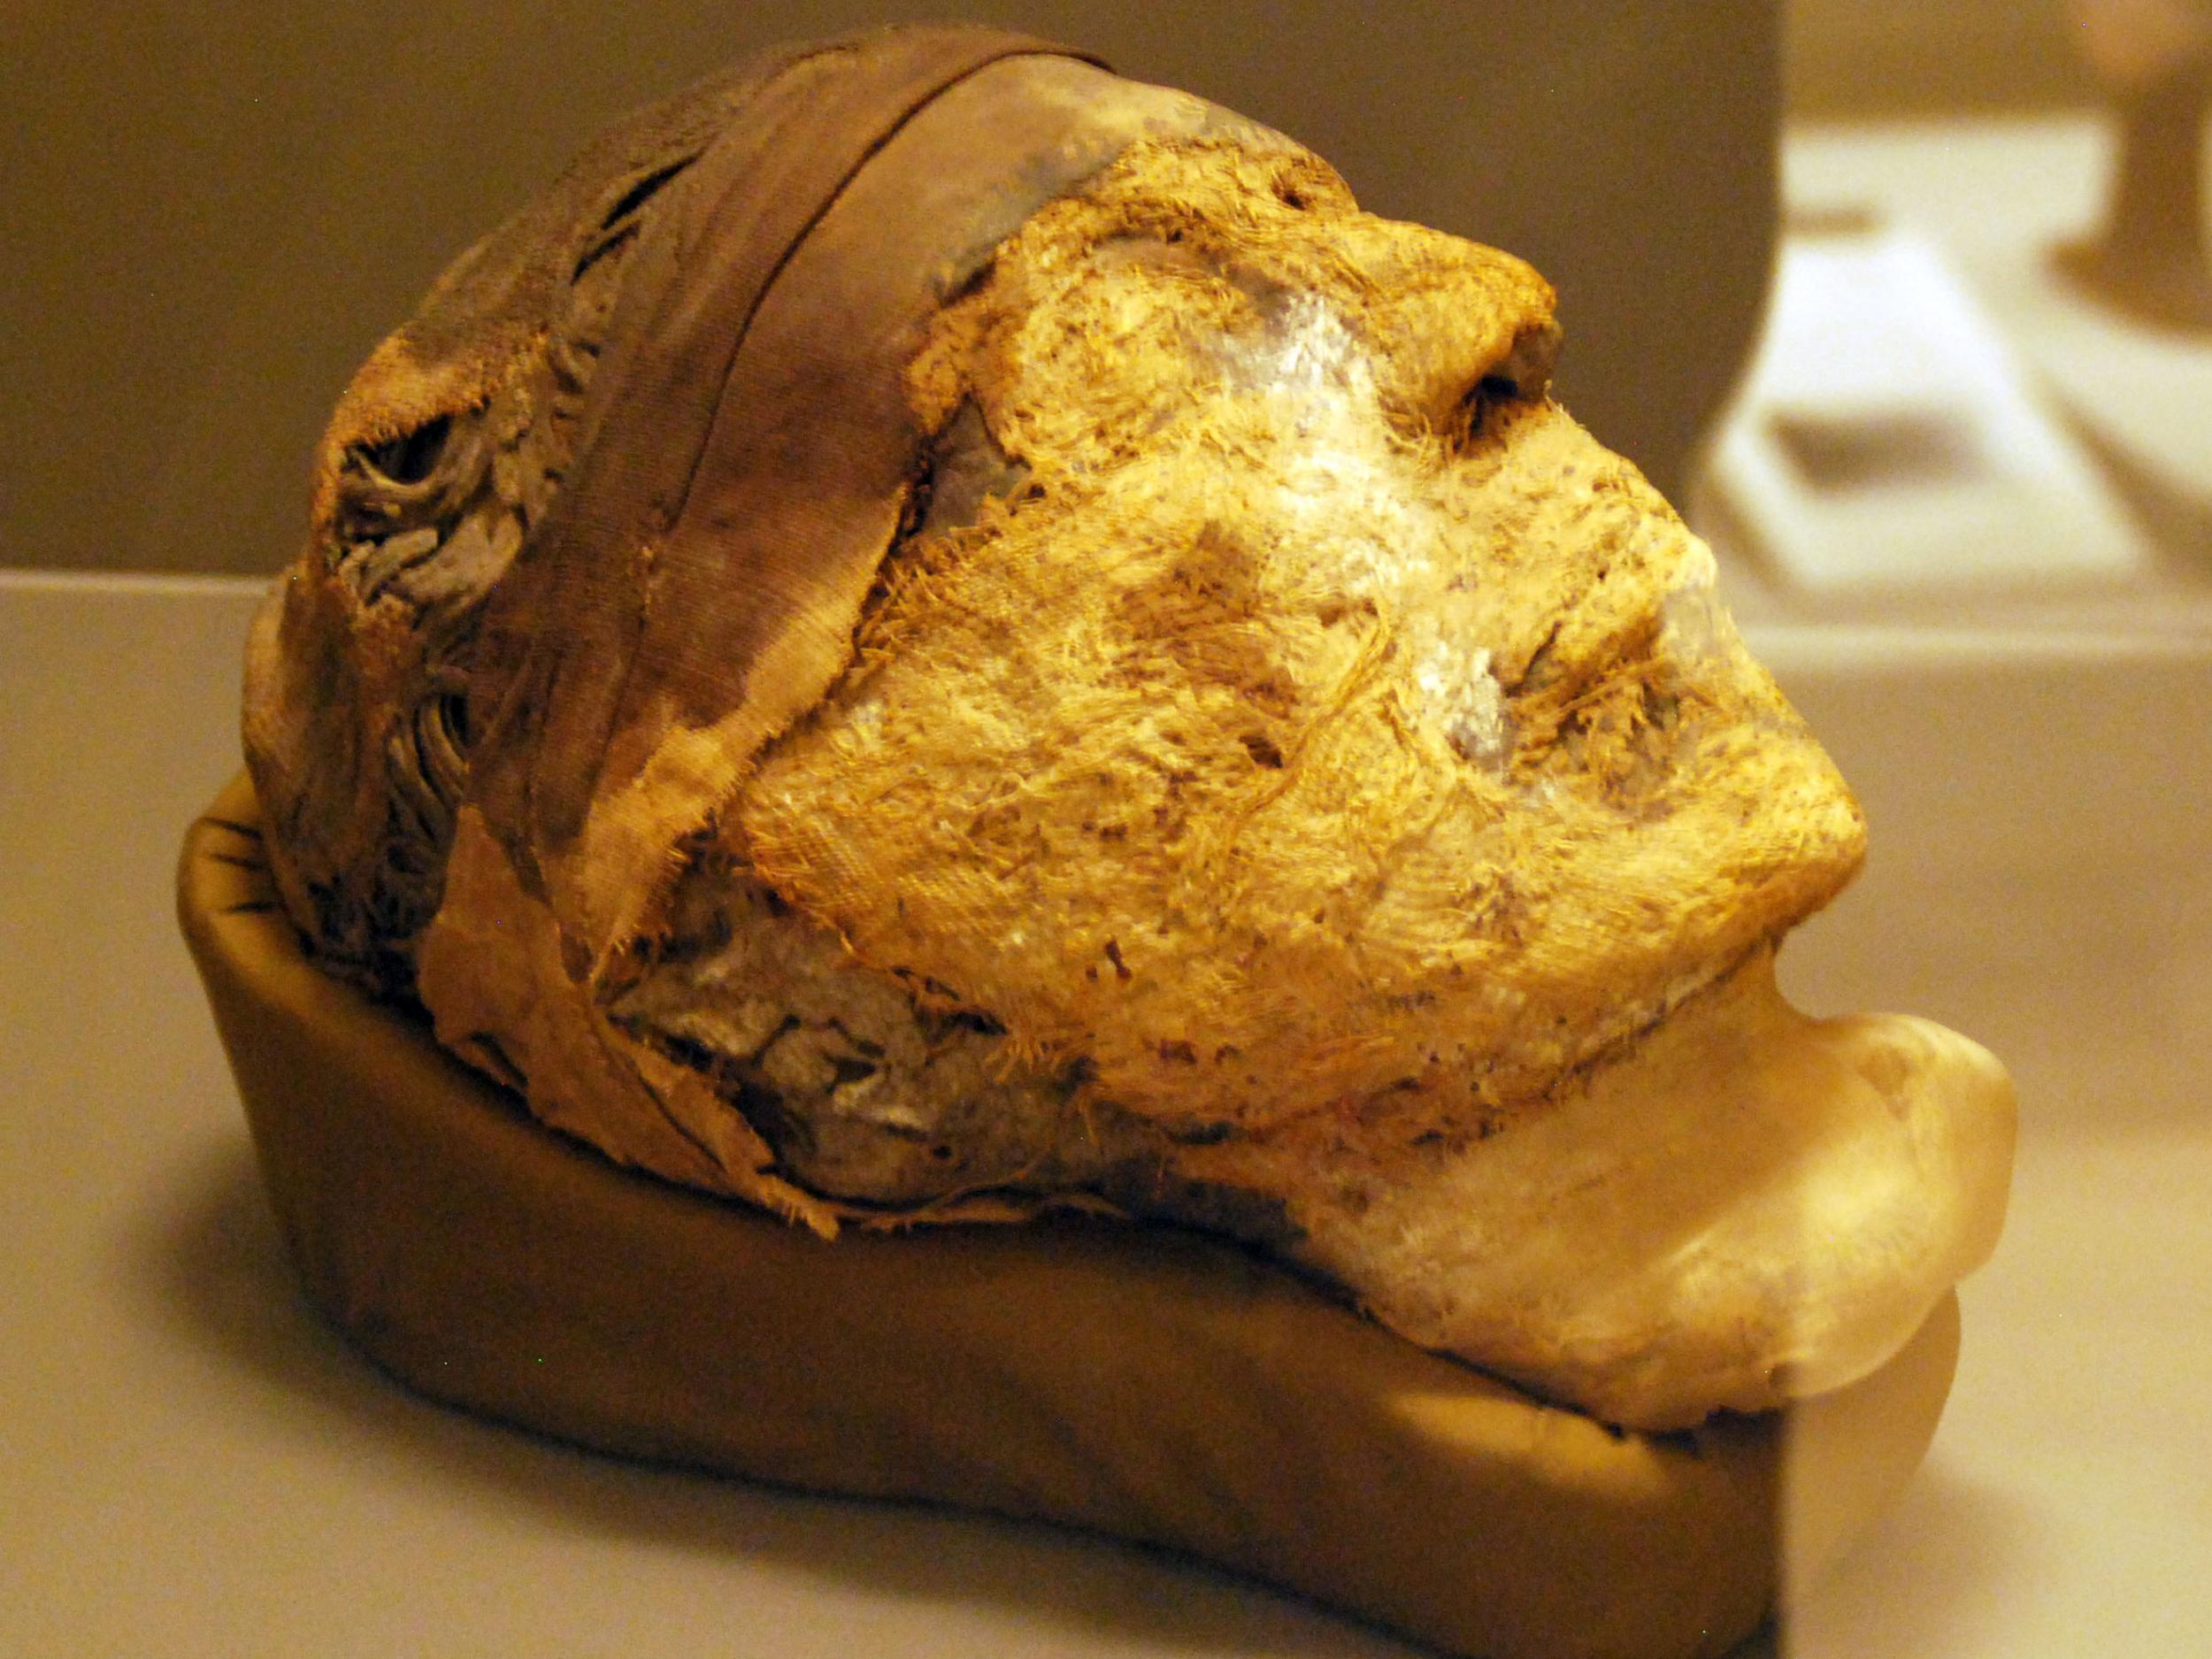 Tomb secrets: The FBI cracks the DNA code on an ancient Egyptian mummy